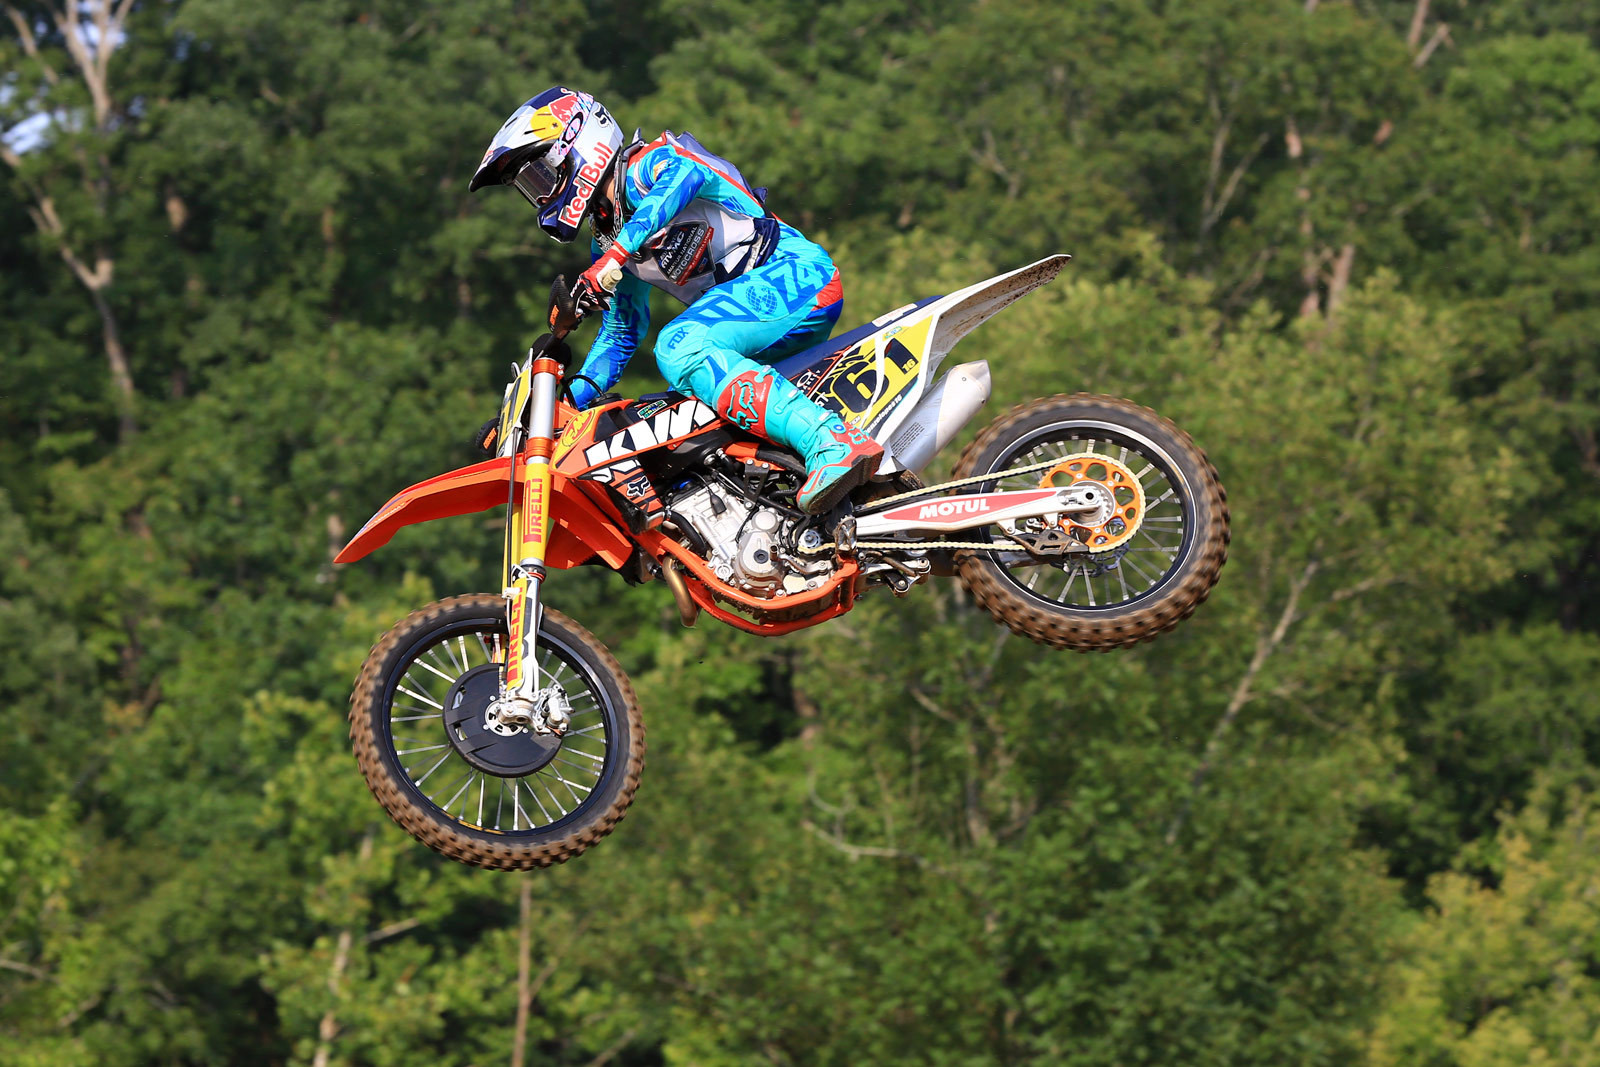 Enzo Lopes - Day 1: 2015 Rocky Mountain ATV/MC AMA Amateur National Motocross Championships  - Motocross Pictures - Vital MX